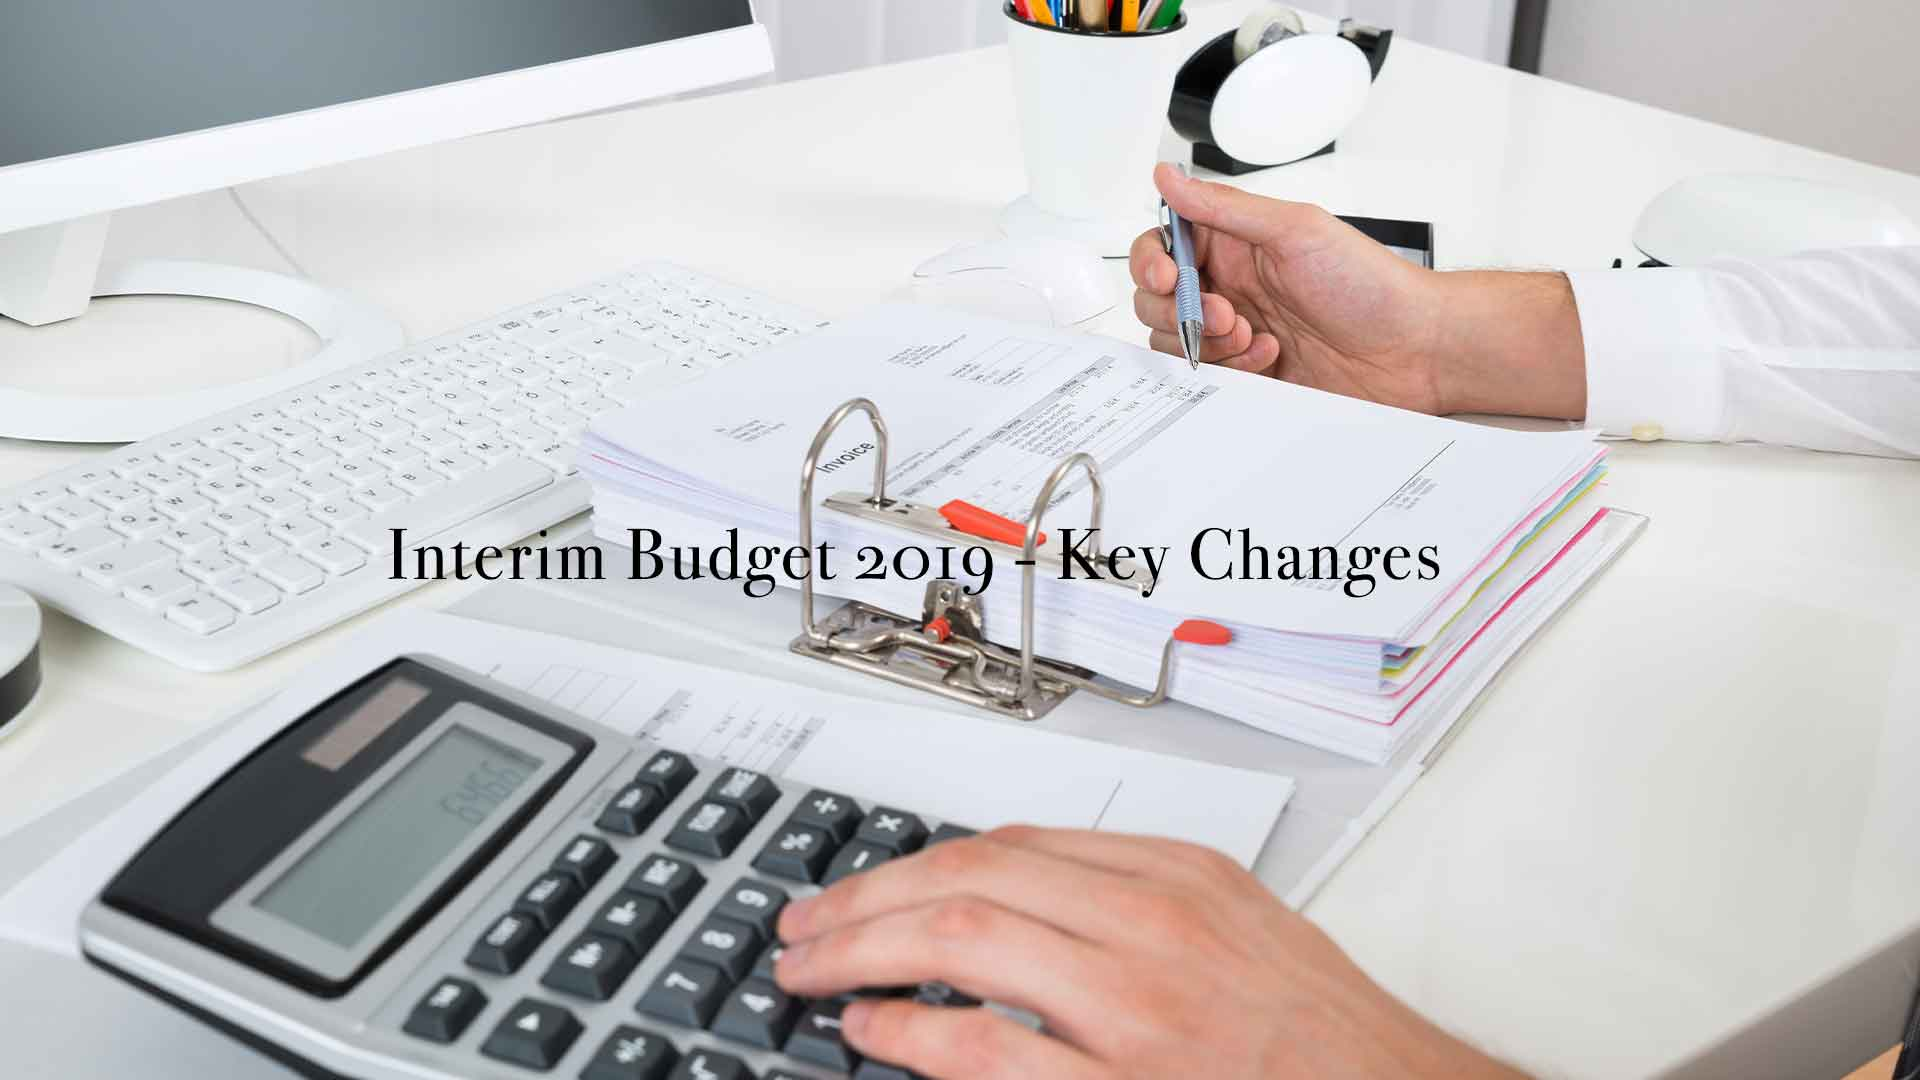 Interim Budget 2019 - Key Changes